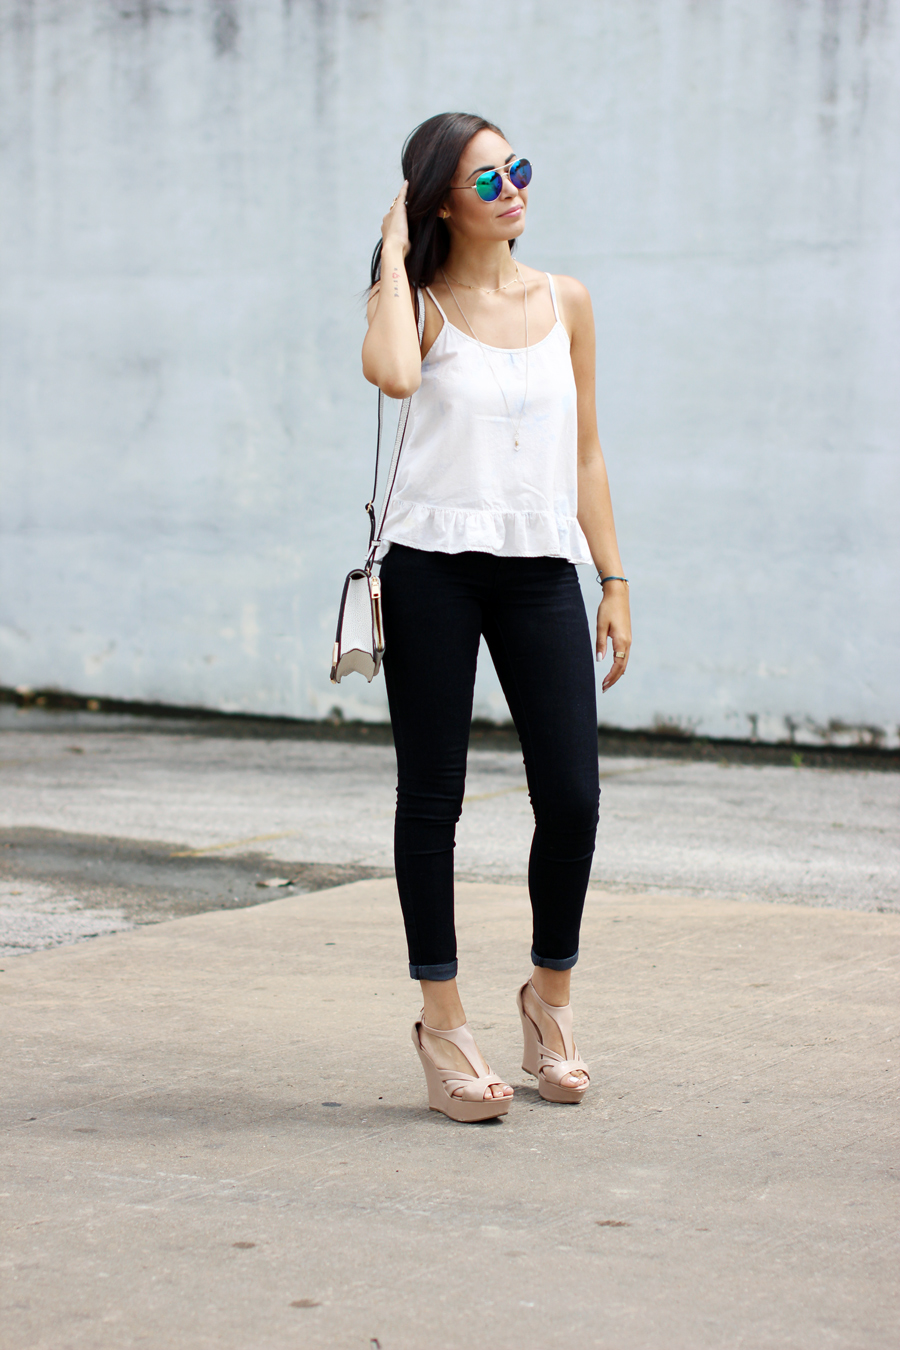 FTT-RUFFLE-TANK-LILY-JAMES-COLLECTION-DENIM-WEDGES-12